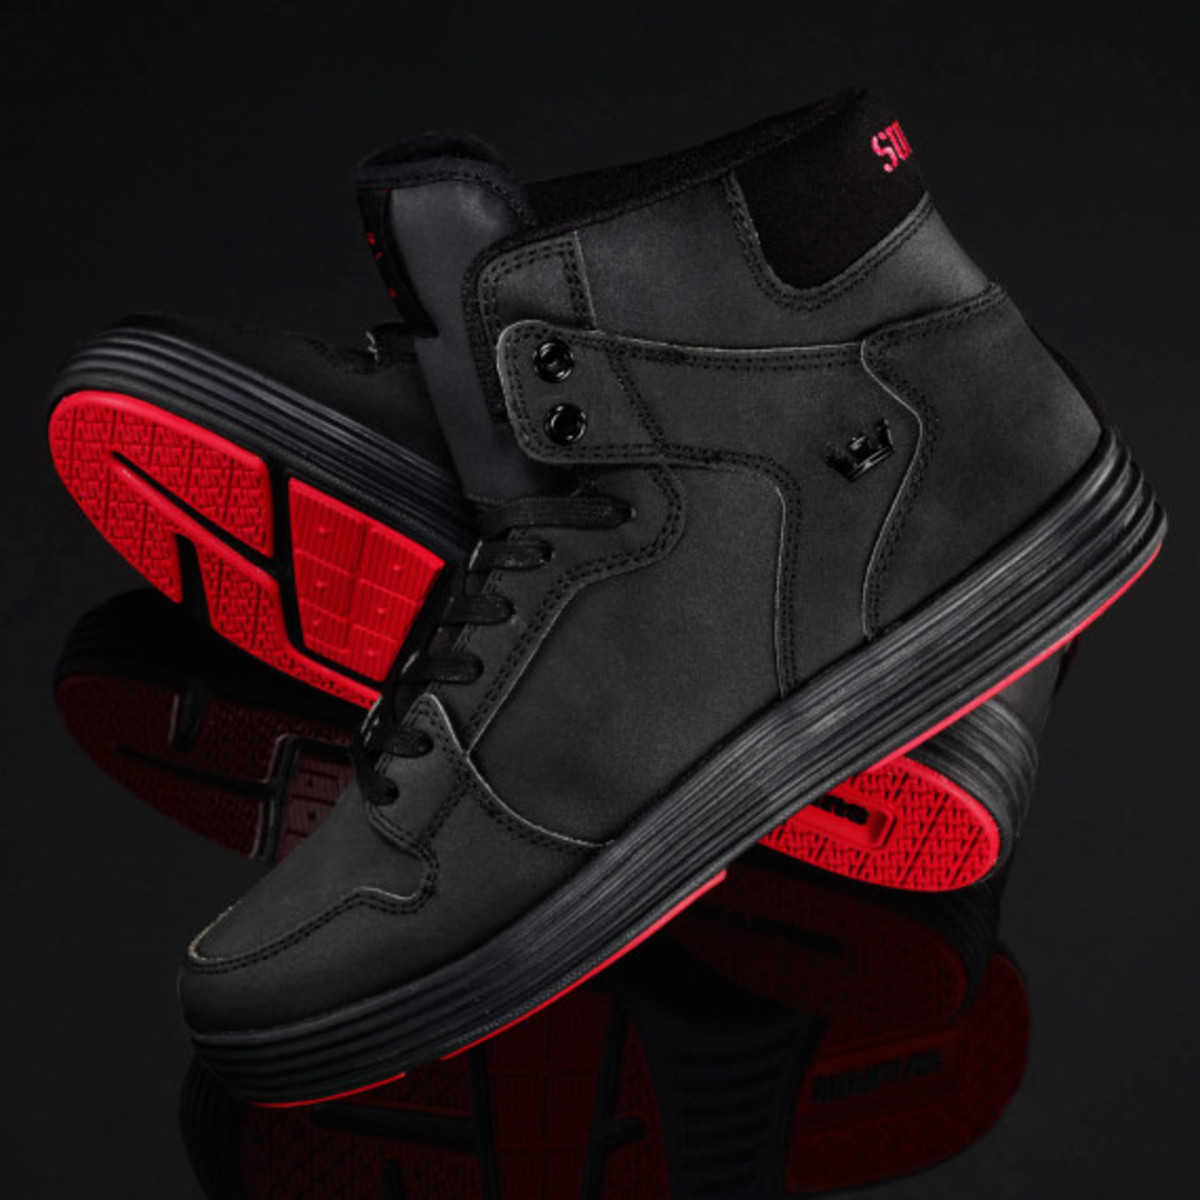 """69b406ac41d4 Casio G-Shock x Supra Vaider Lite – """"It s About Time"""" Edition ..."""